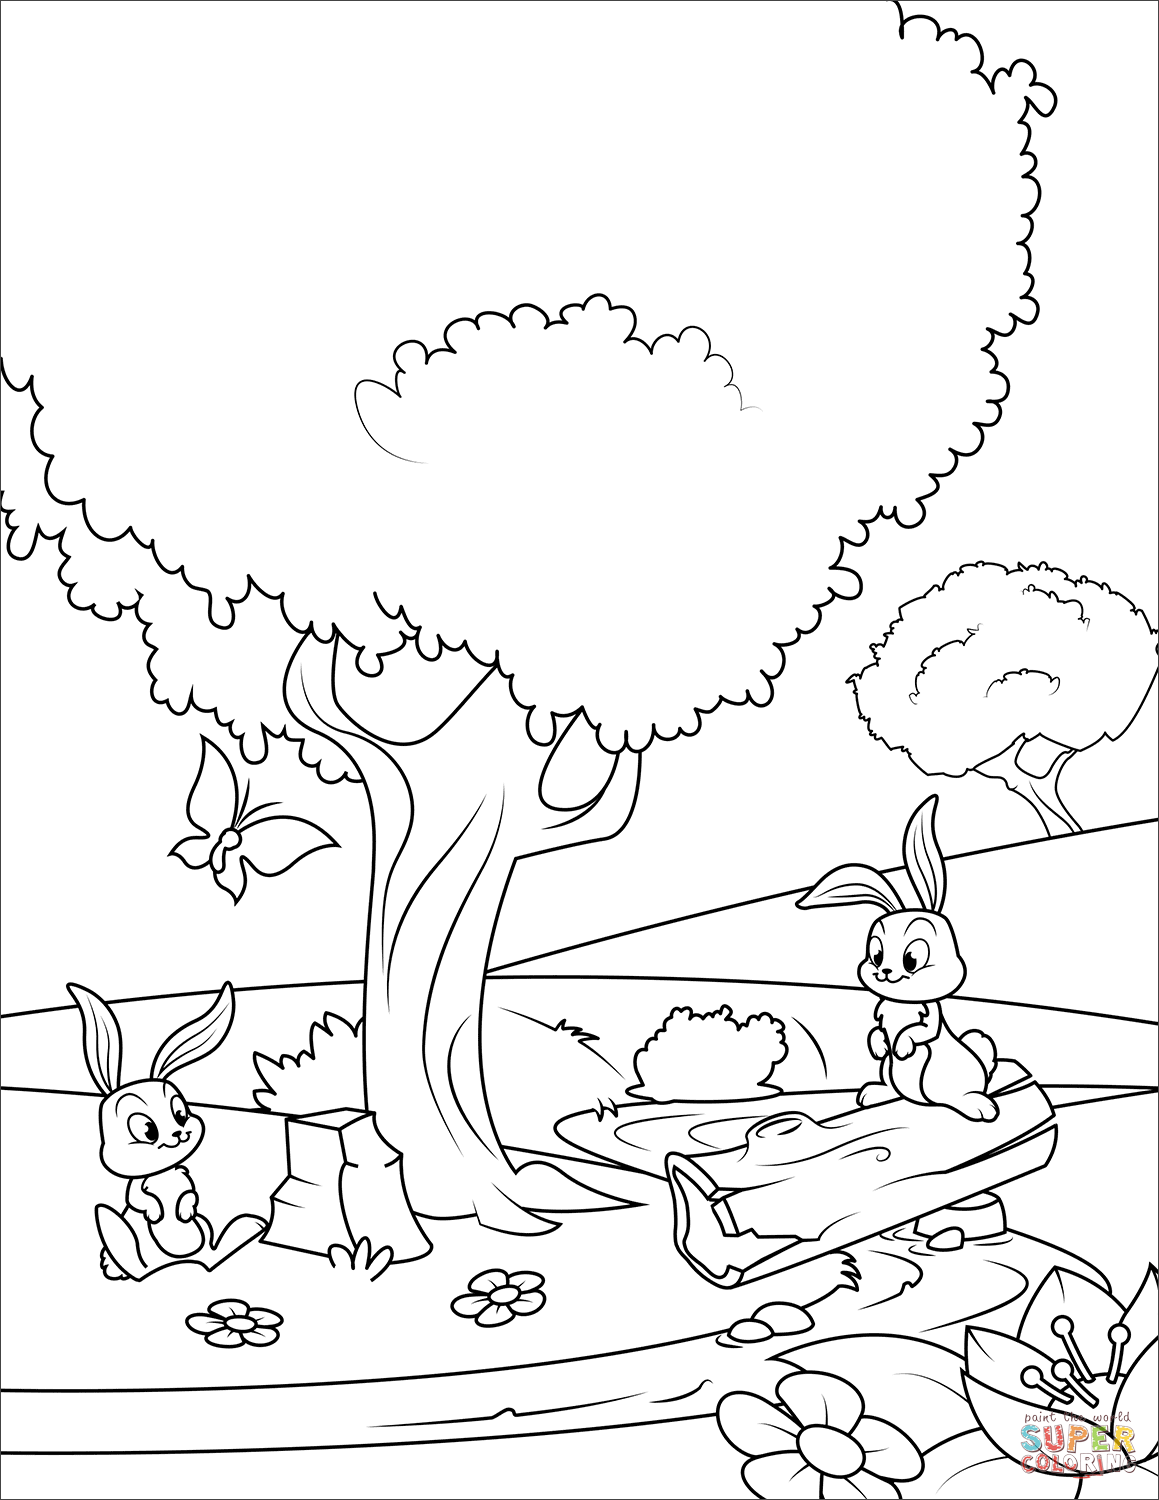 printable forest pictures tropical rainforest animals coloring pages at getcolorings printable forest pictures